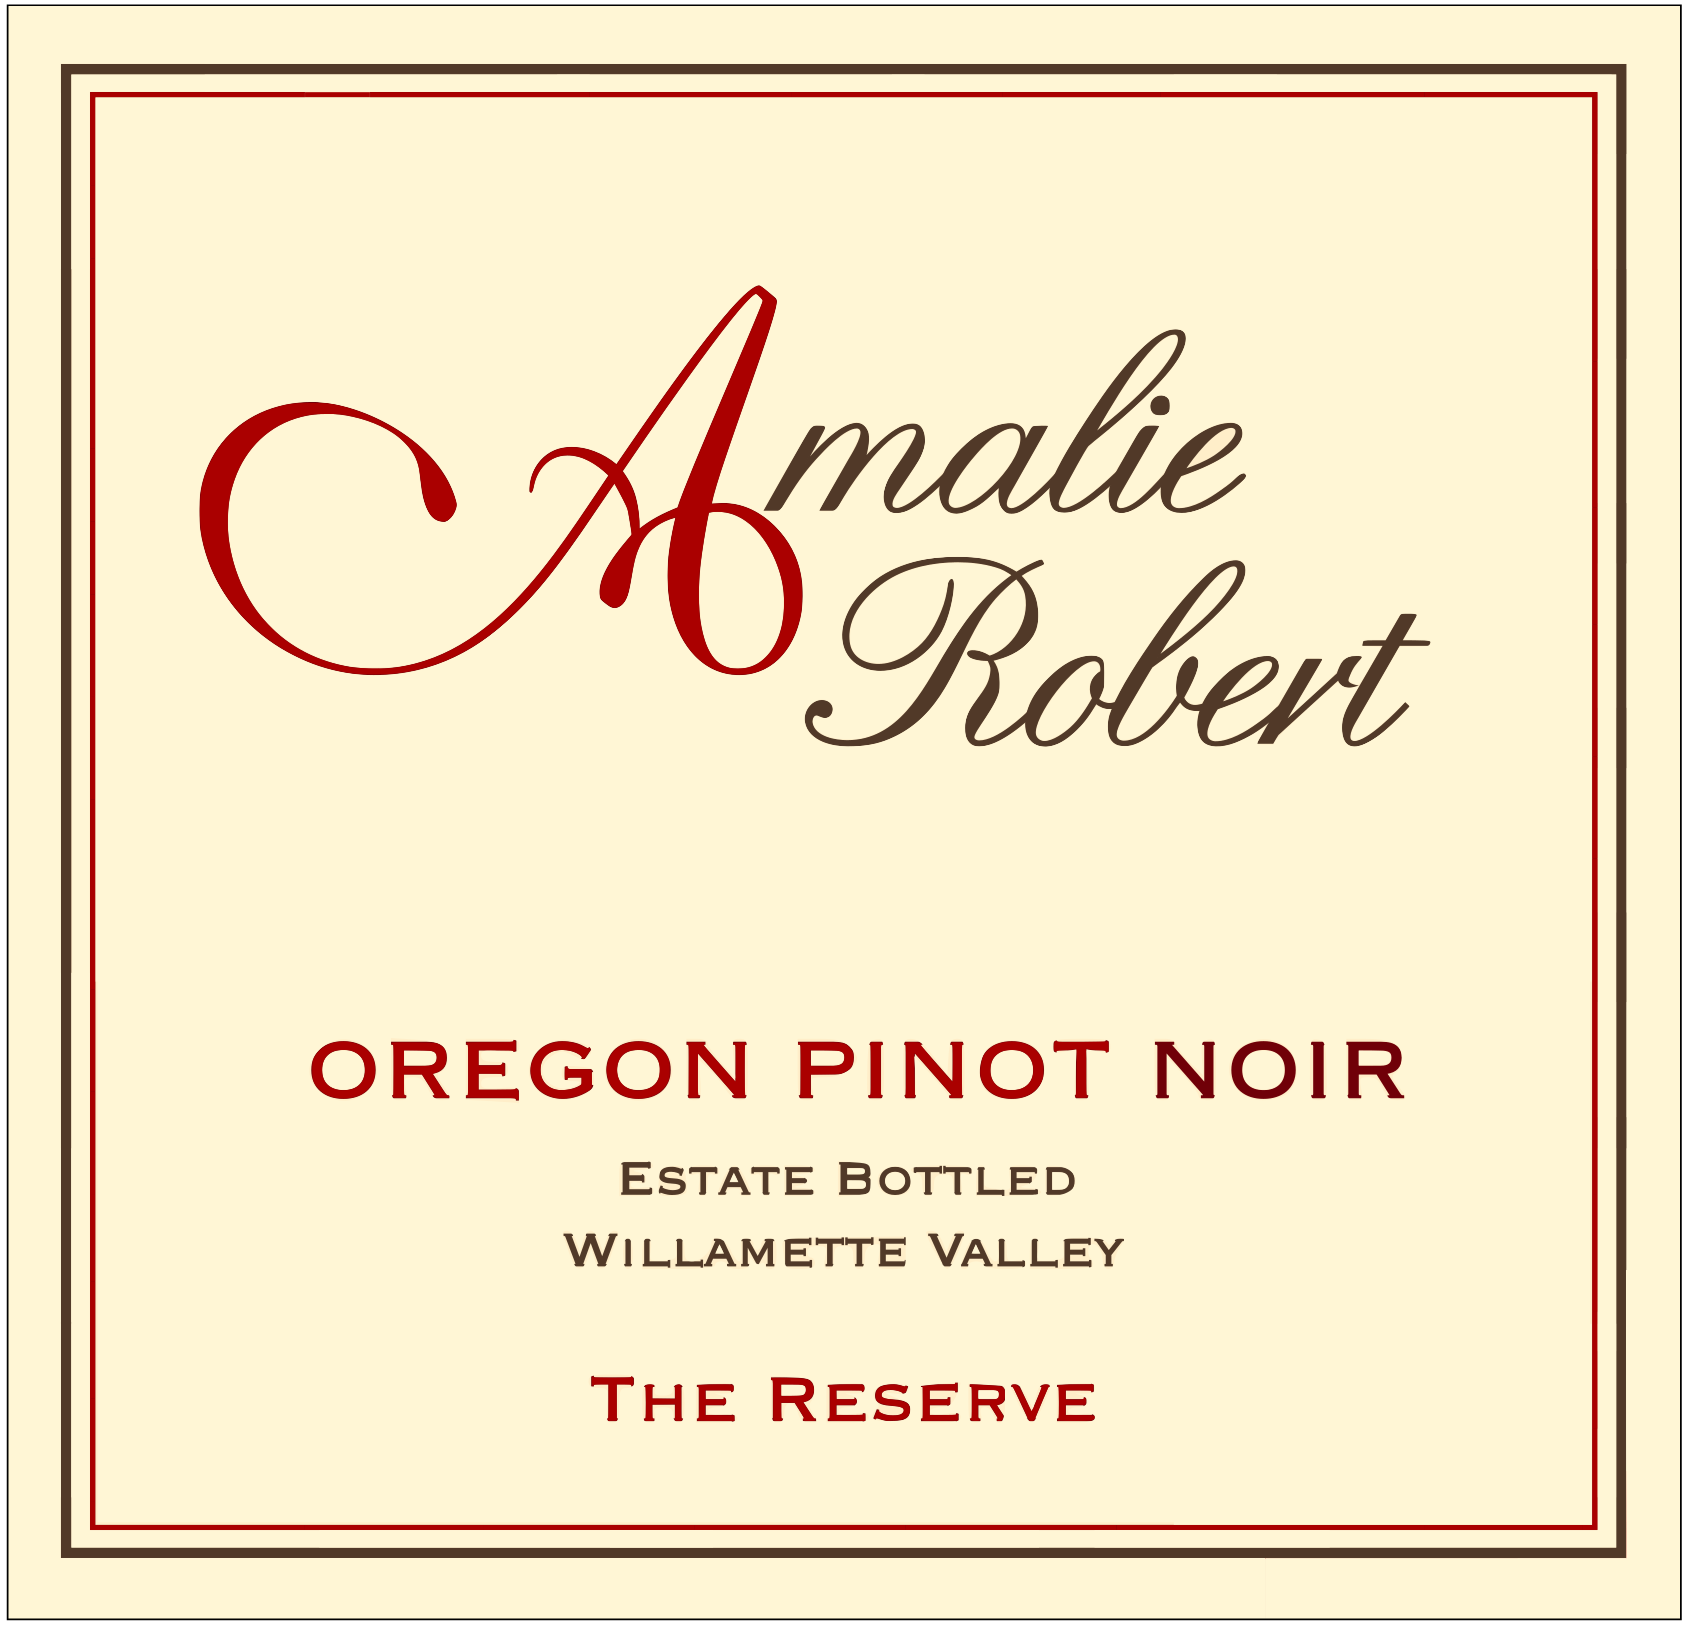 2013 The Reserve Pinot Noir MAIN